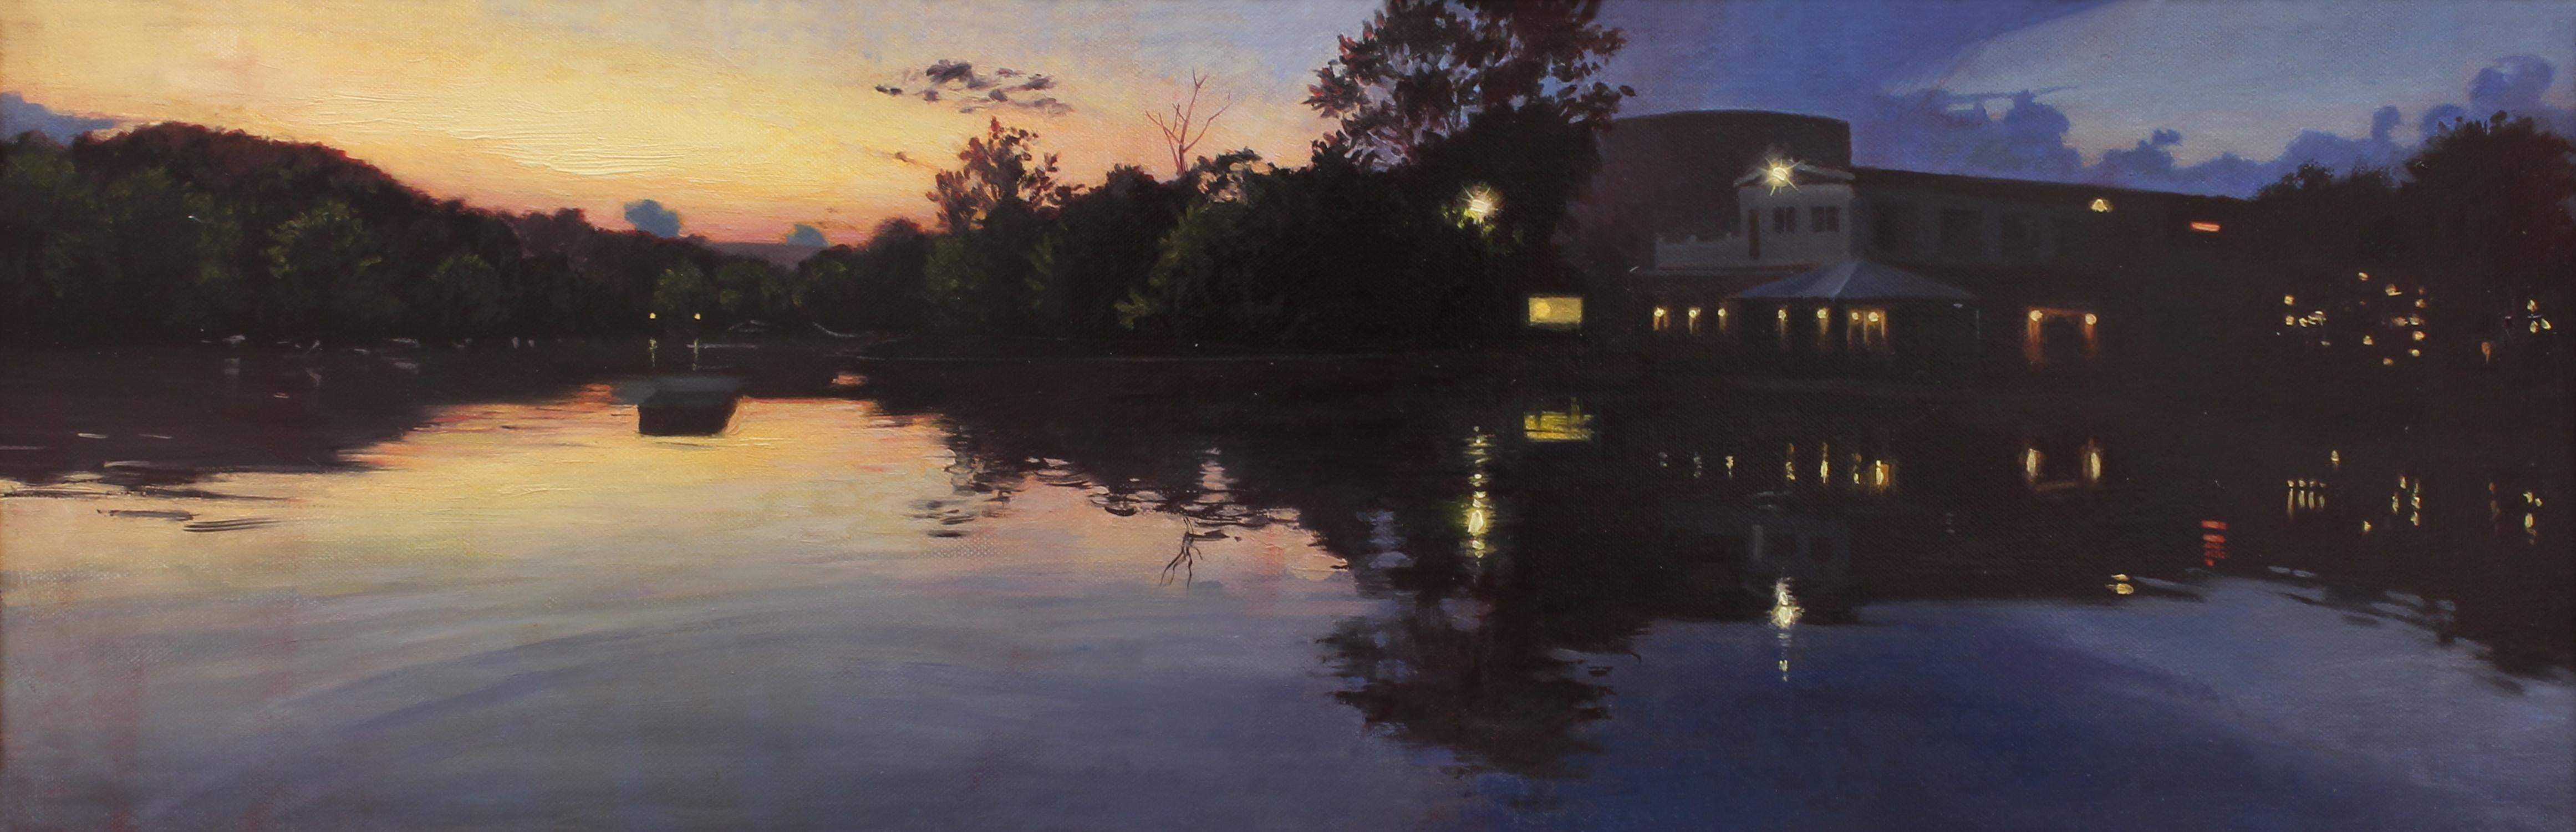 """""""Twilight"""" - Nocturne - Landscape Painting - American Realism - Wyeth"""